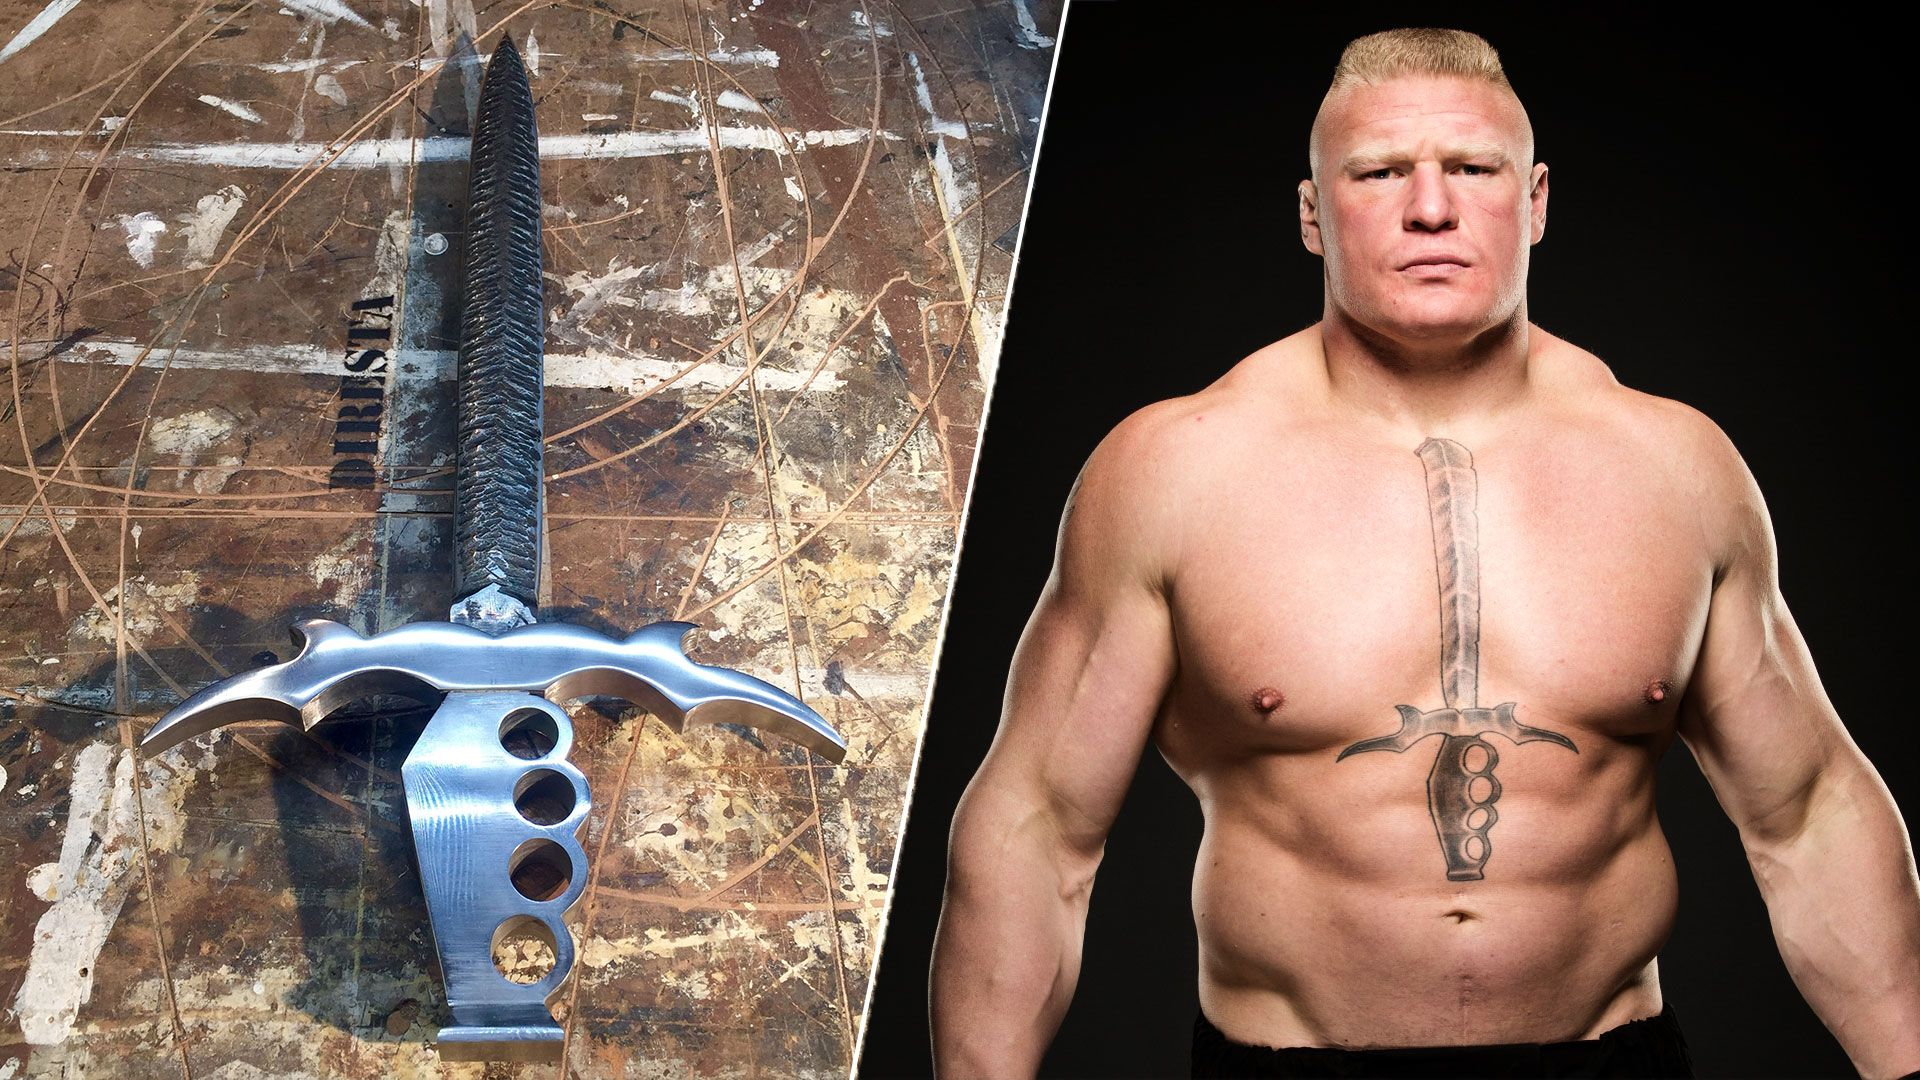 Brock Lesnar S Tattoo Comes To Life Brock Lesnar Tattoos Sword Tattoo Brock lesnar tattoo wallpaper download